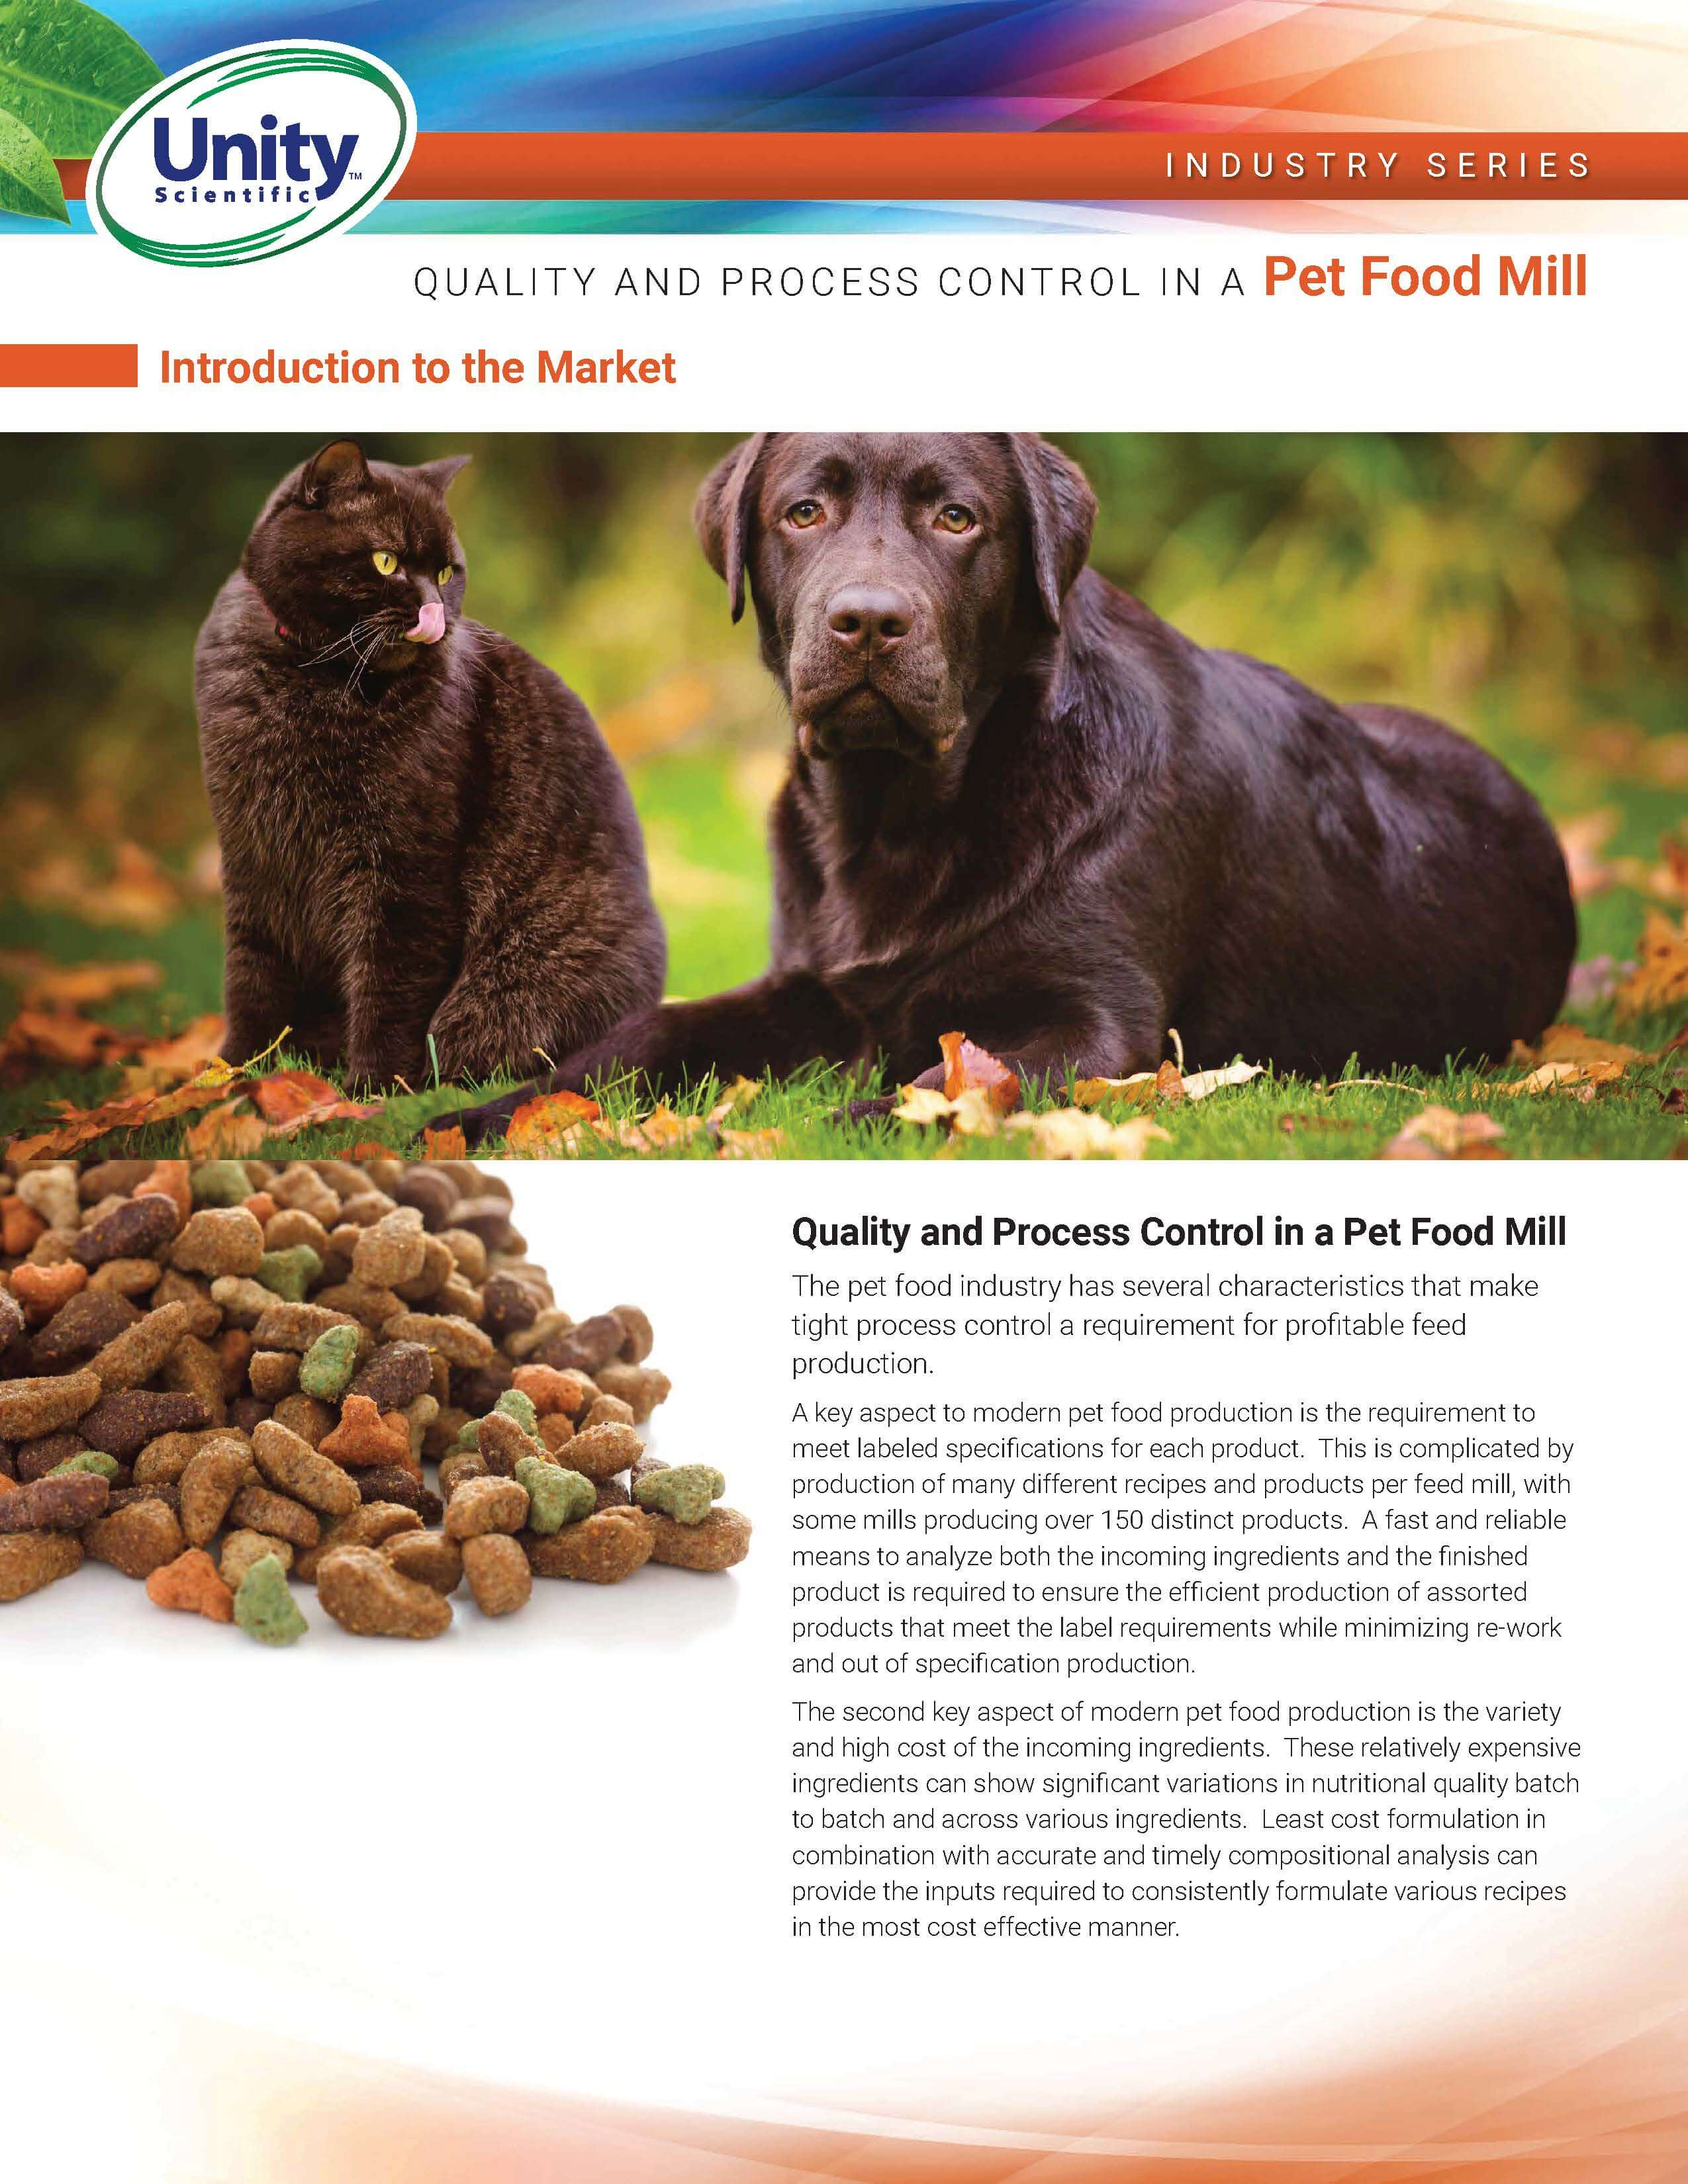 Industry Series - Quality And Process Control In A Pet Food Mill